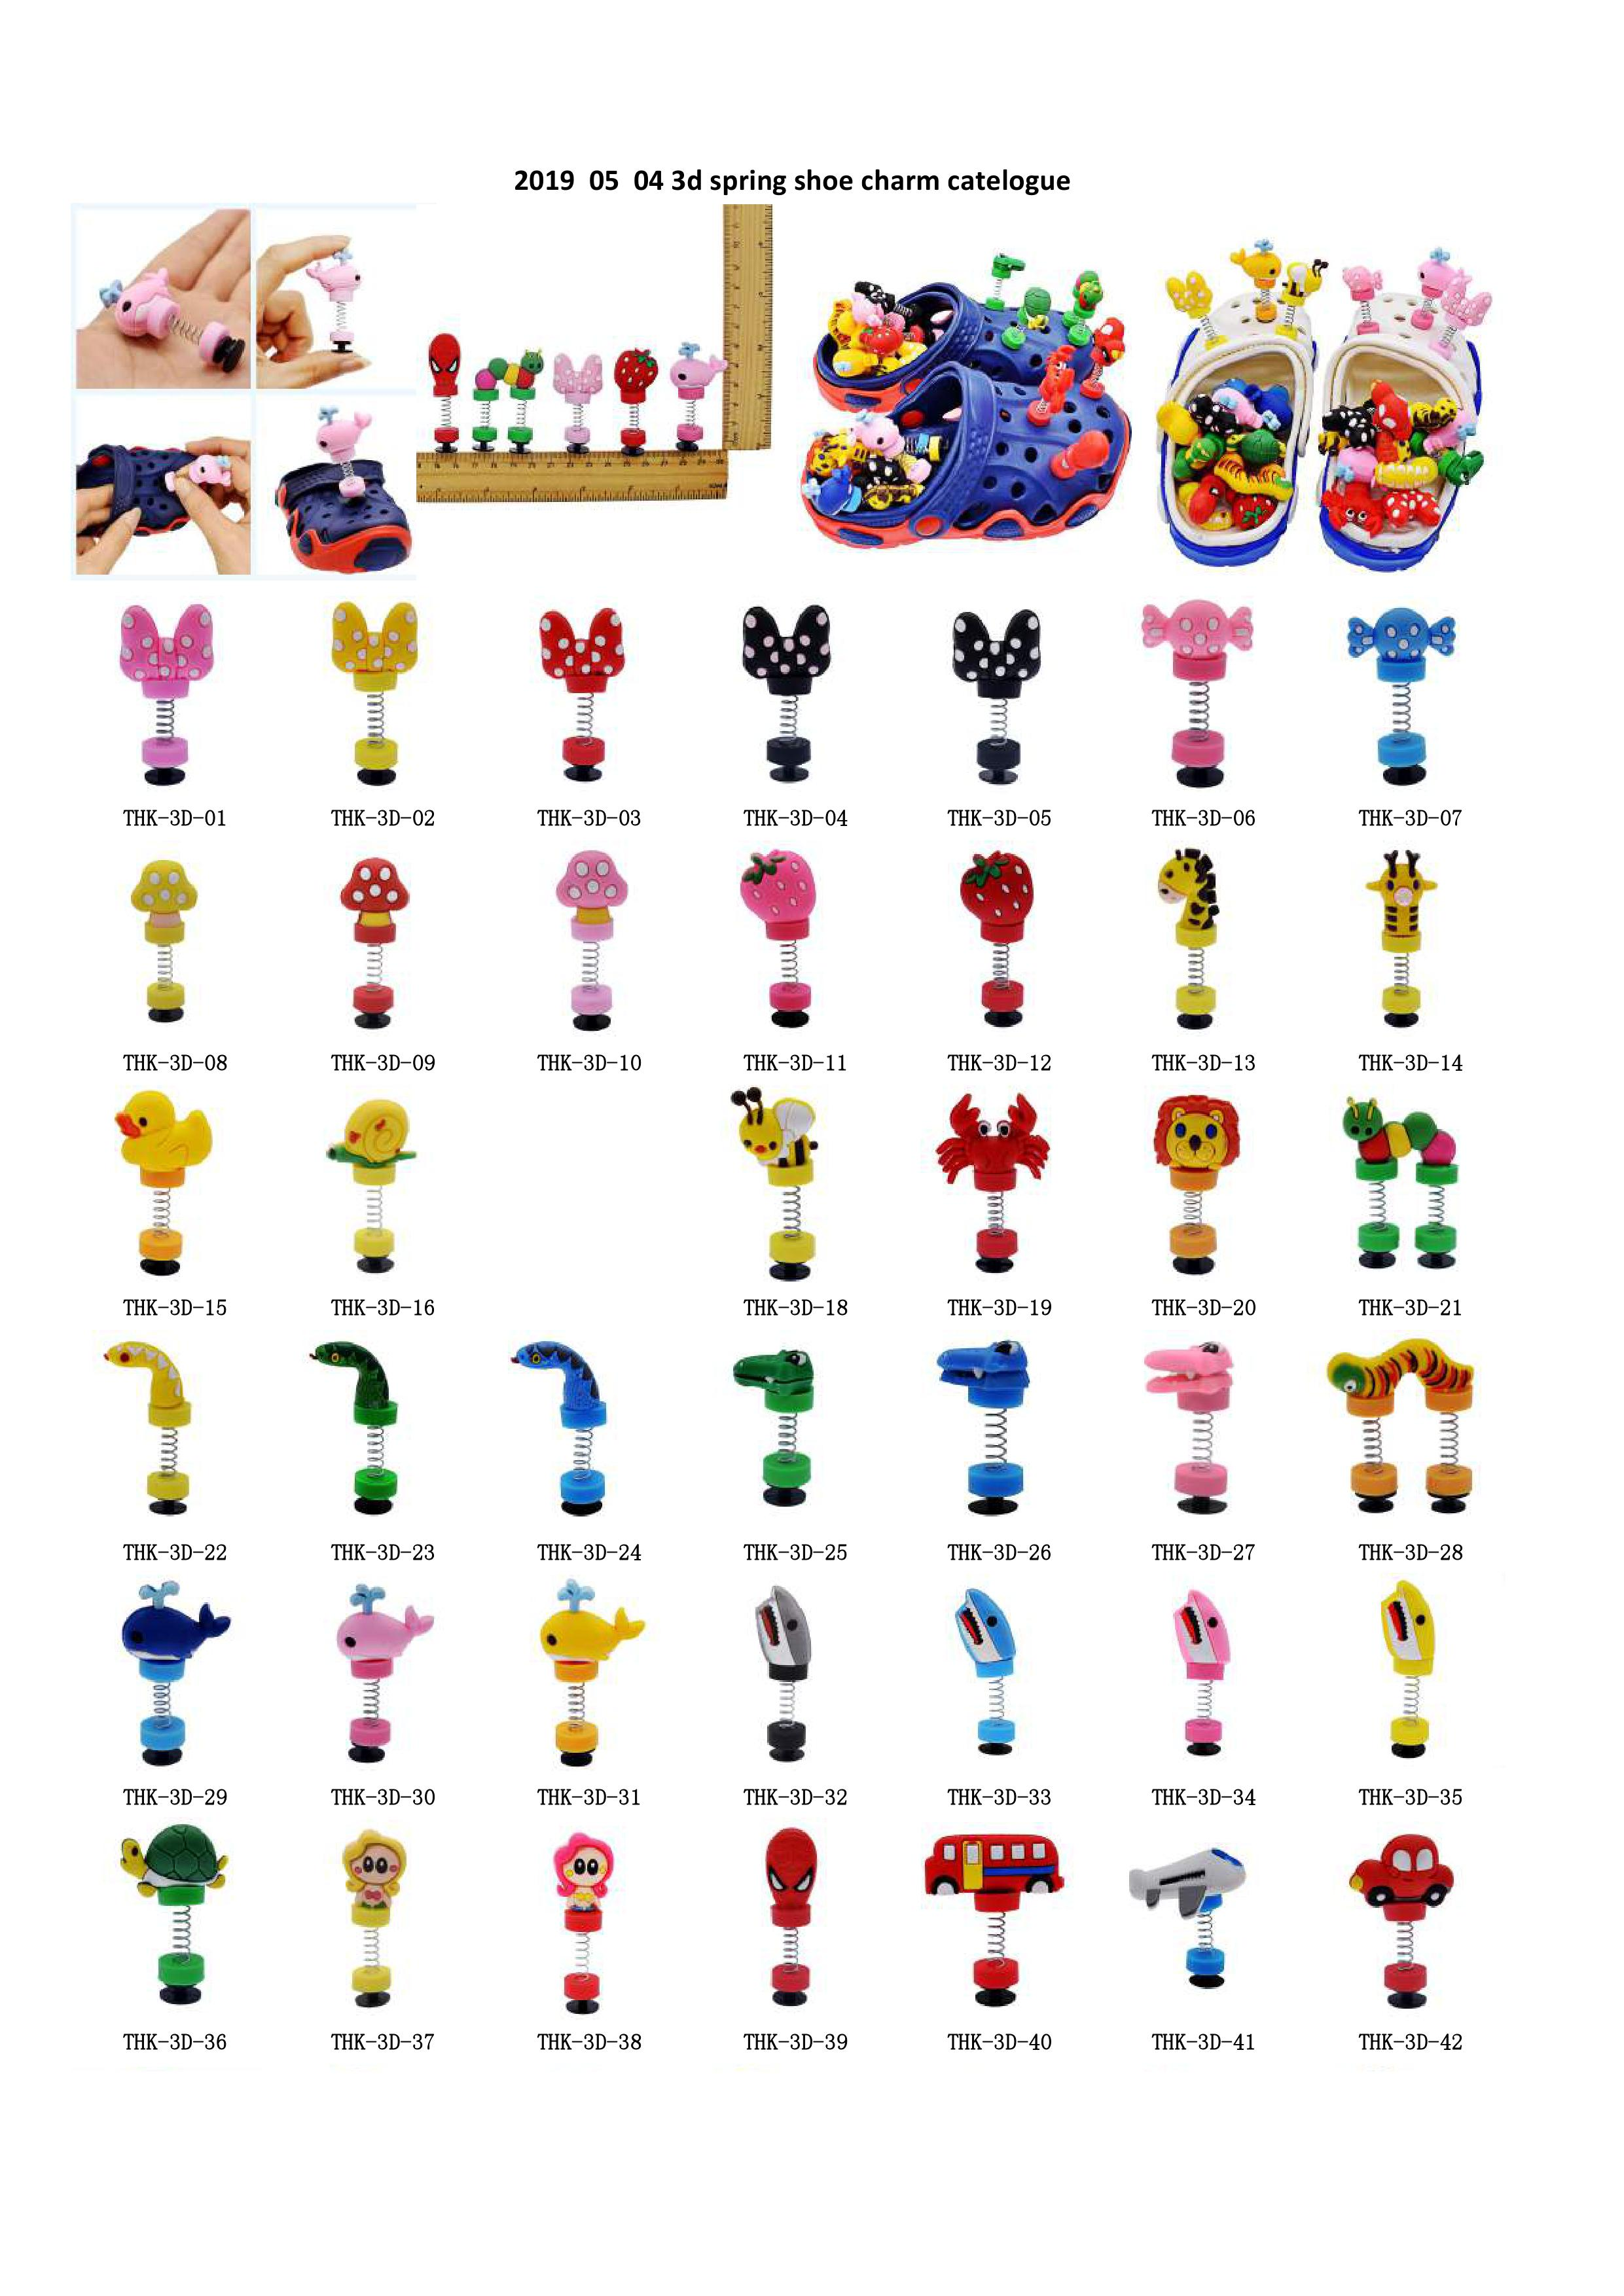 100pcs You Selected 3D Spring Shoe Ornaments Cartoon Animals Cars Bowknots Candy Sandal Accessories Boys Girls